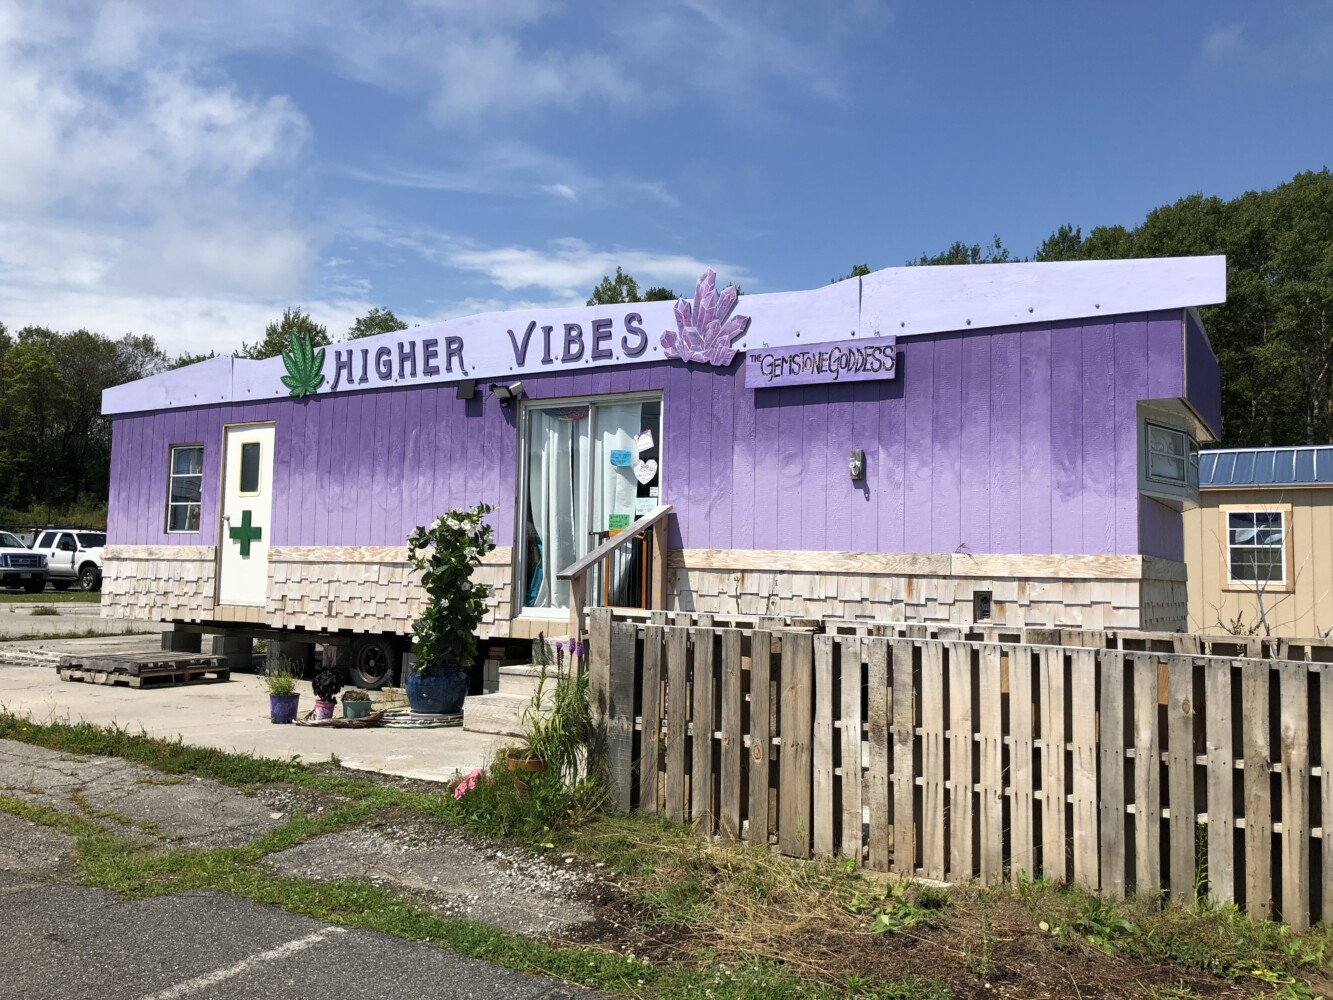 Maine S Route 1 Lobster Shacks Blueberry Stands And